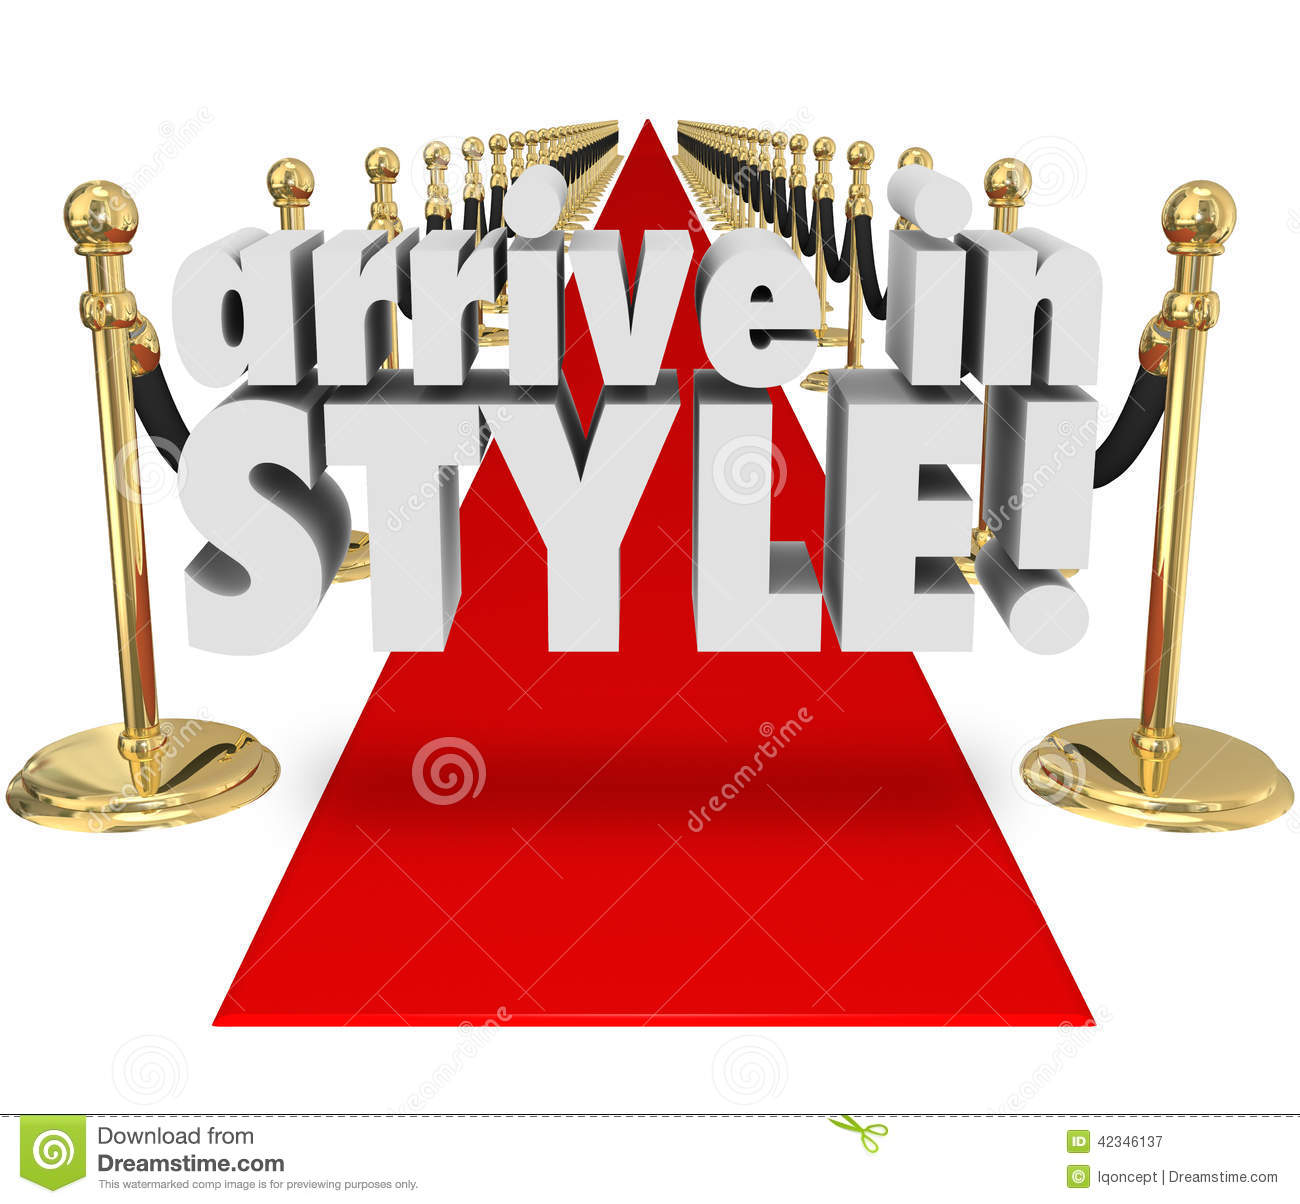 3d Red Carpet And Velvet Ropes Royalty Free Stock Photo 41740731